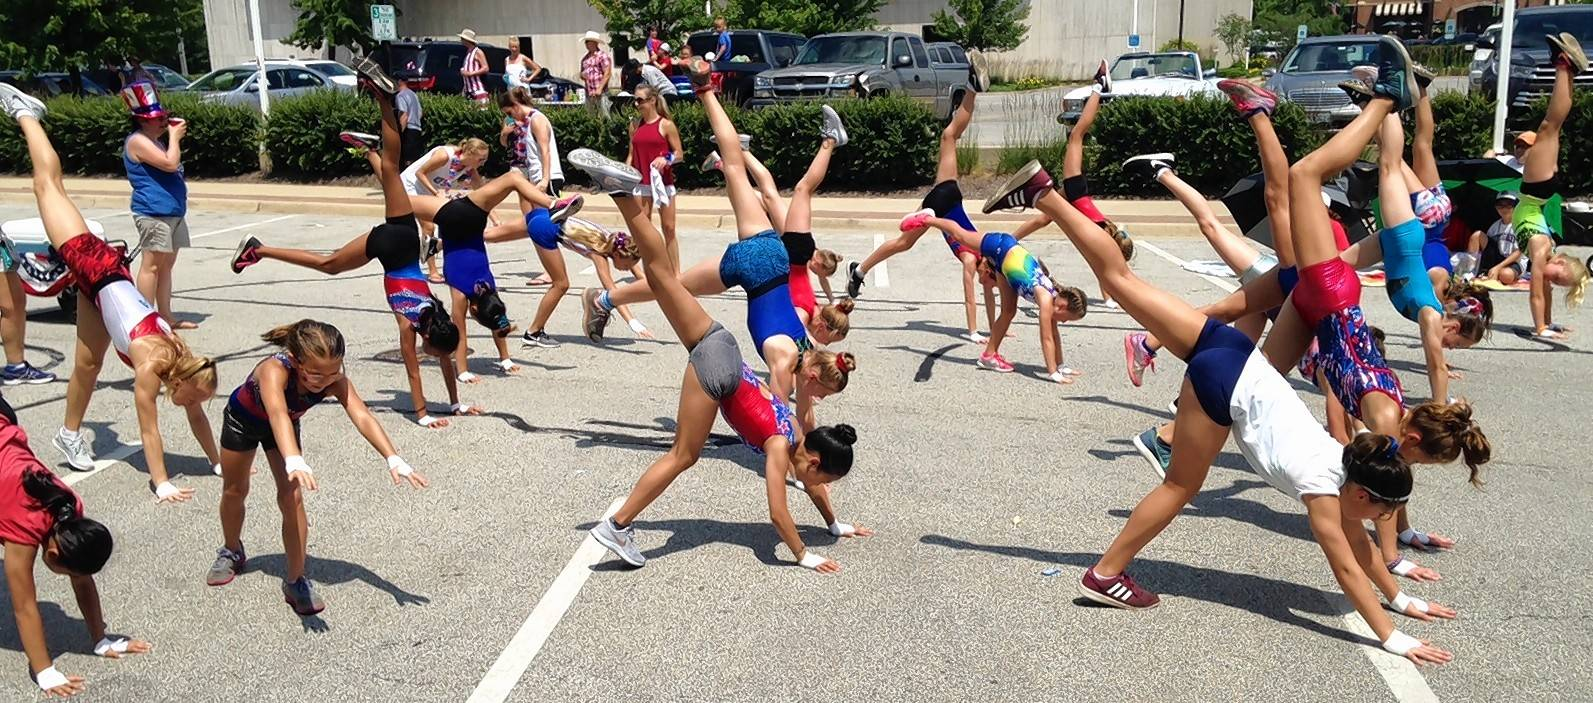 Girls in the Palatine Gymnastics Club do handstands on the hot asphalt during the Palatine Hometown Fest parade Saturday. They also were throwing out handfuls of candy to bystanders.